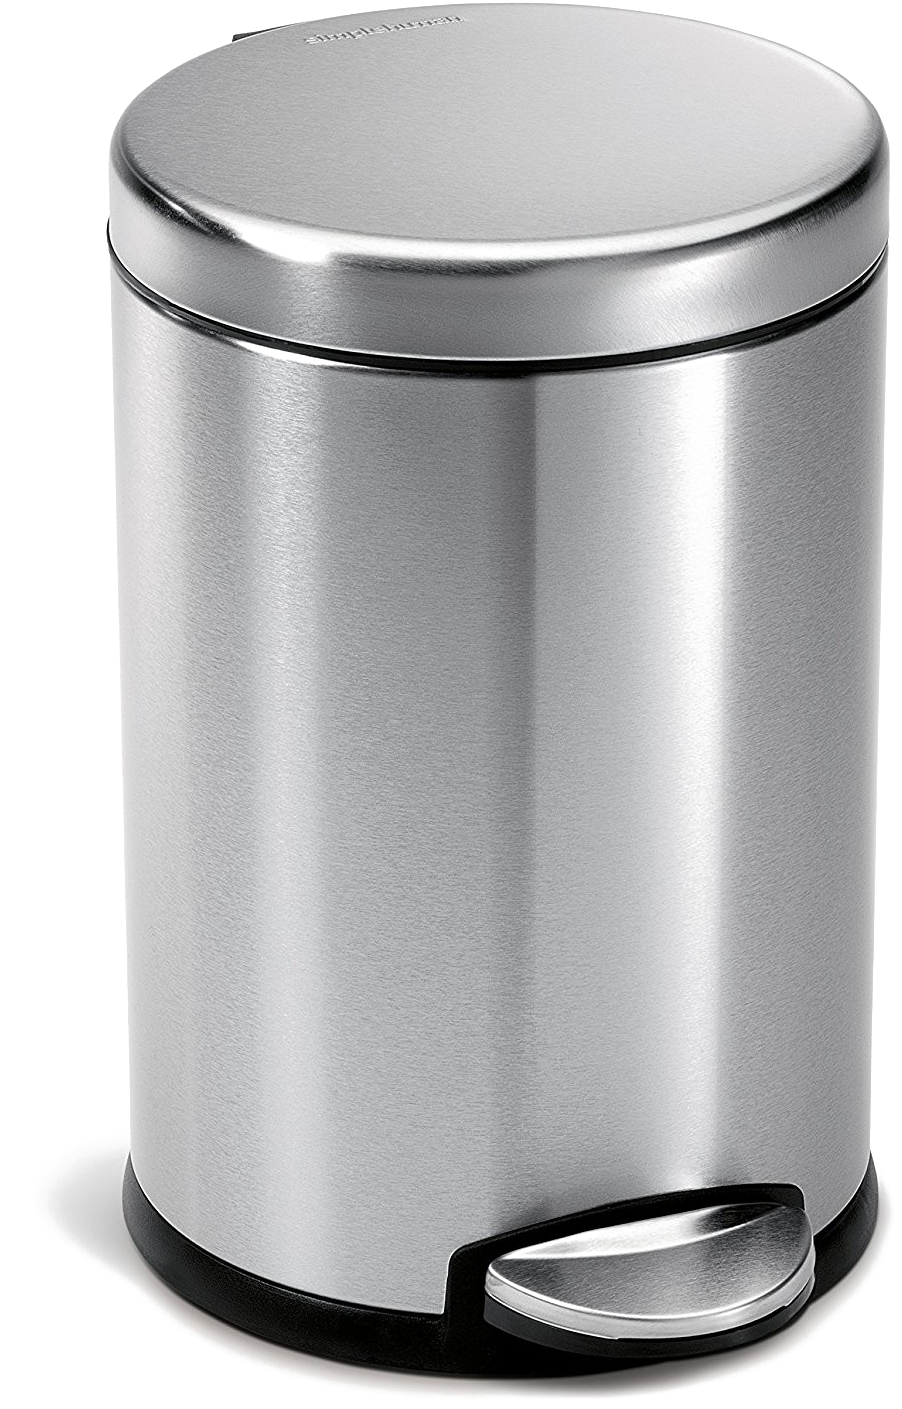 Trash Can Png High-quality Image - Step Trash Can (1500x1500), Png Download